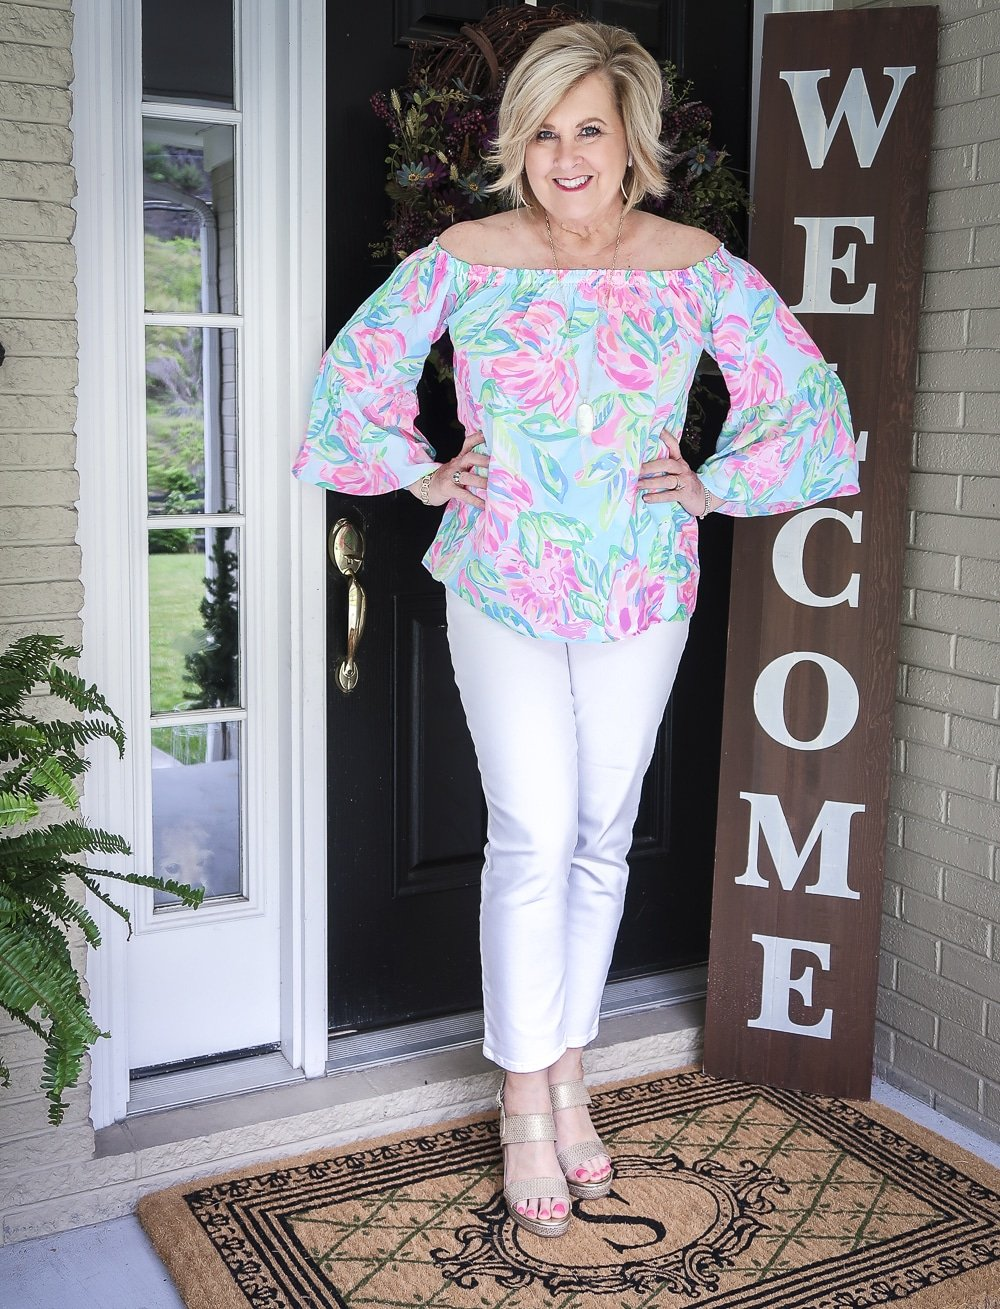 Fashion Blogger 50 Is Not Old wearing a colorful off the shoulder top from Lilly Pulitzer and white jeans with gold espadrilles